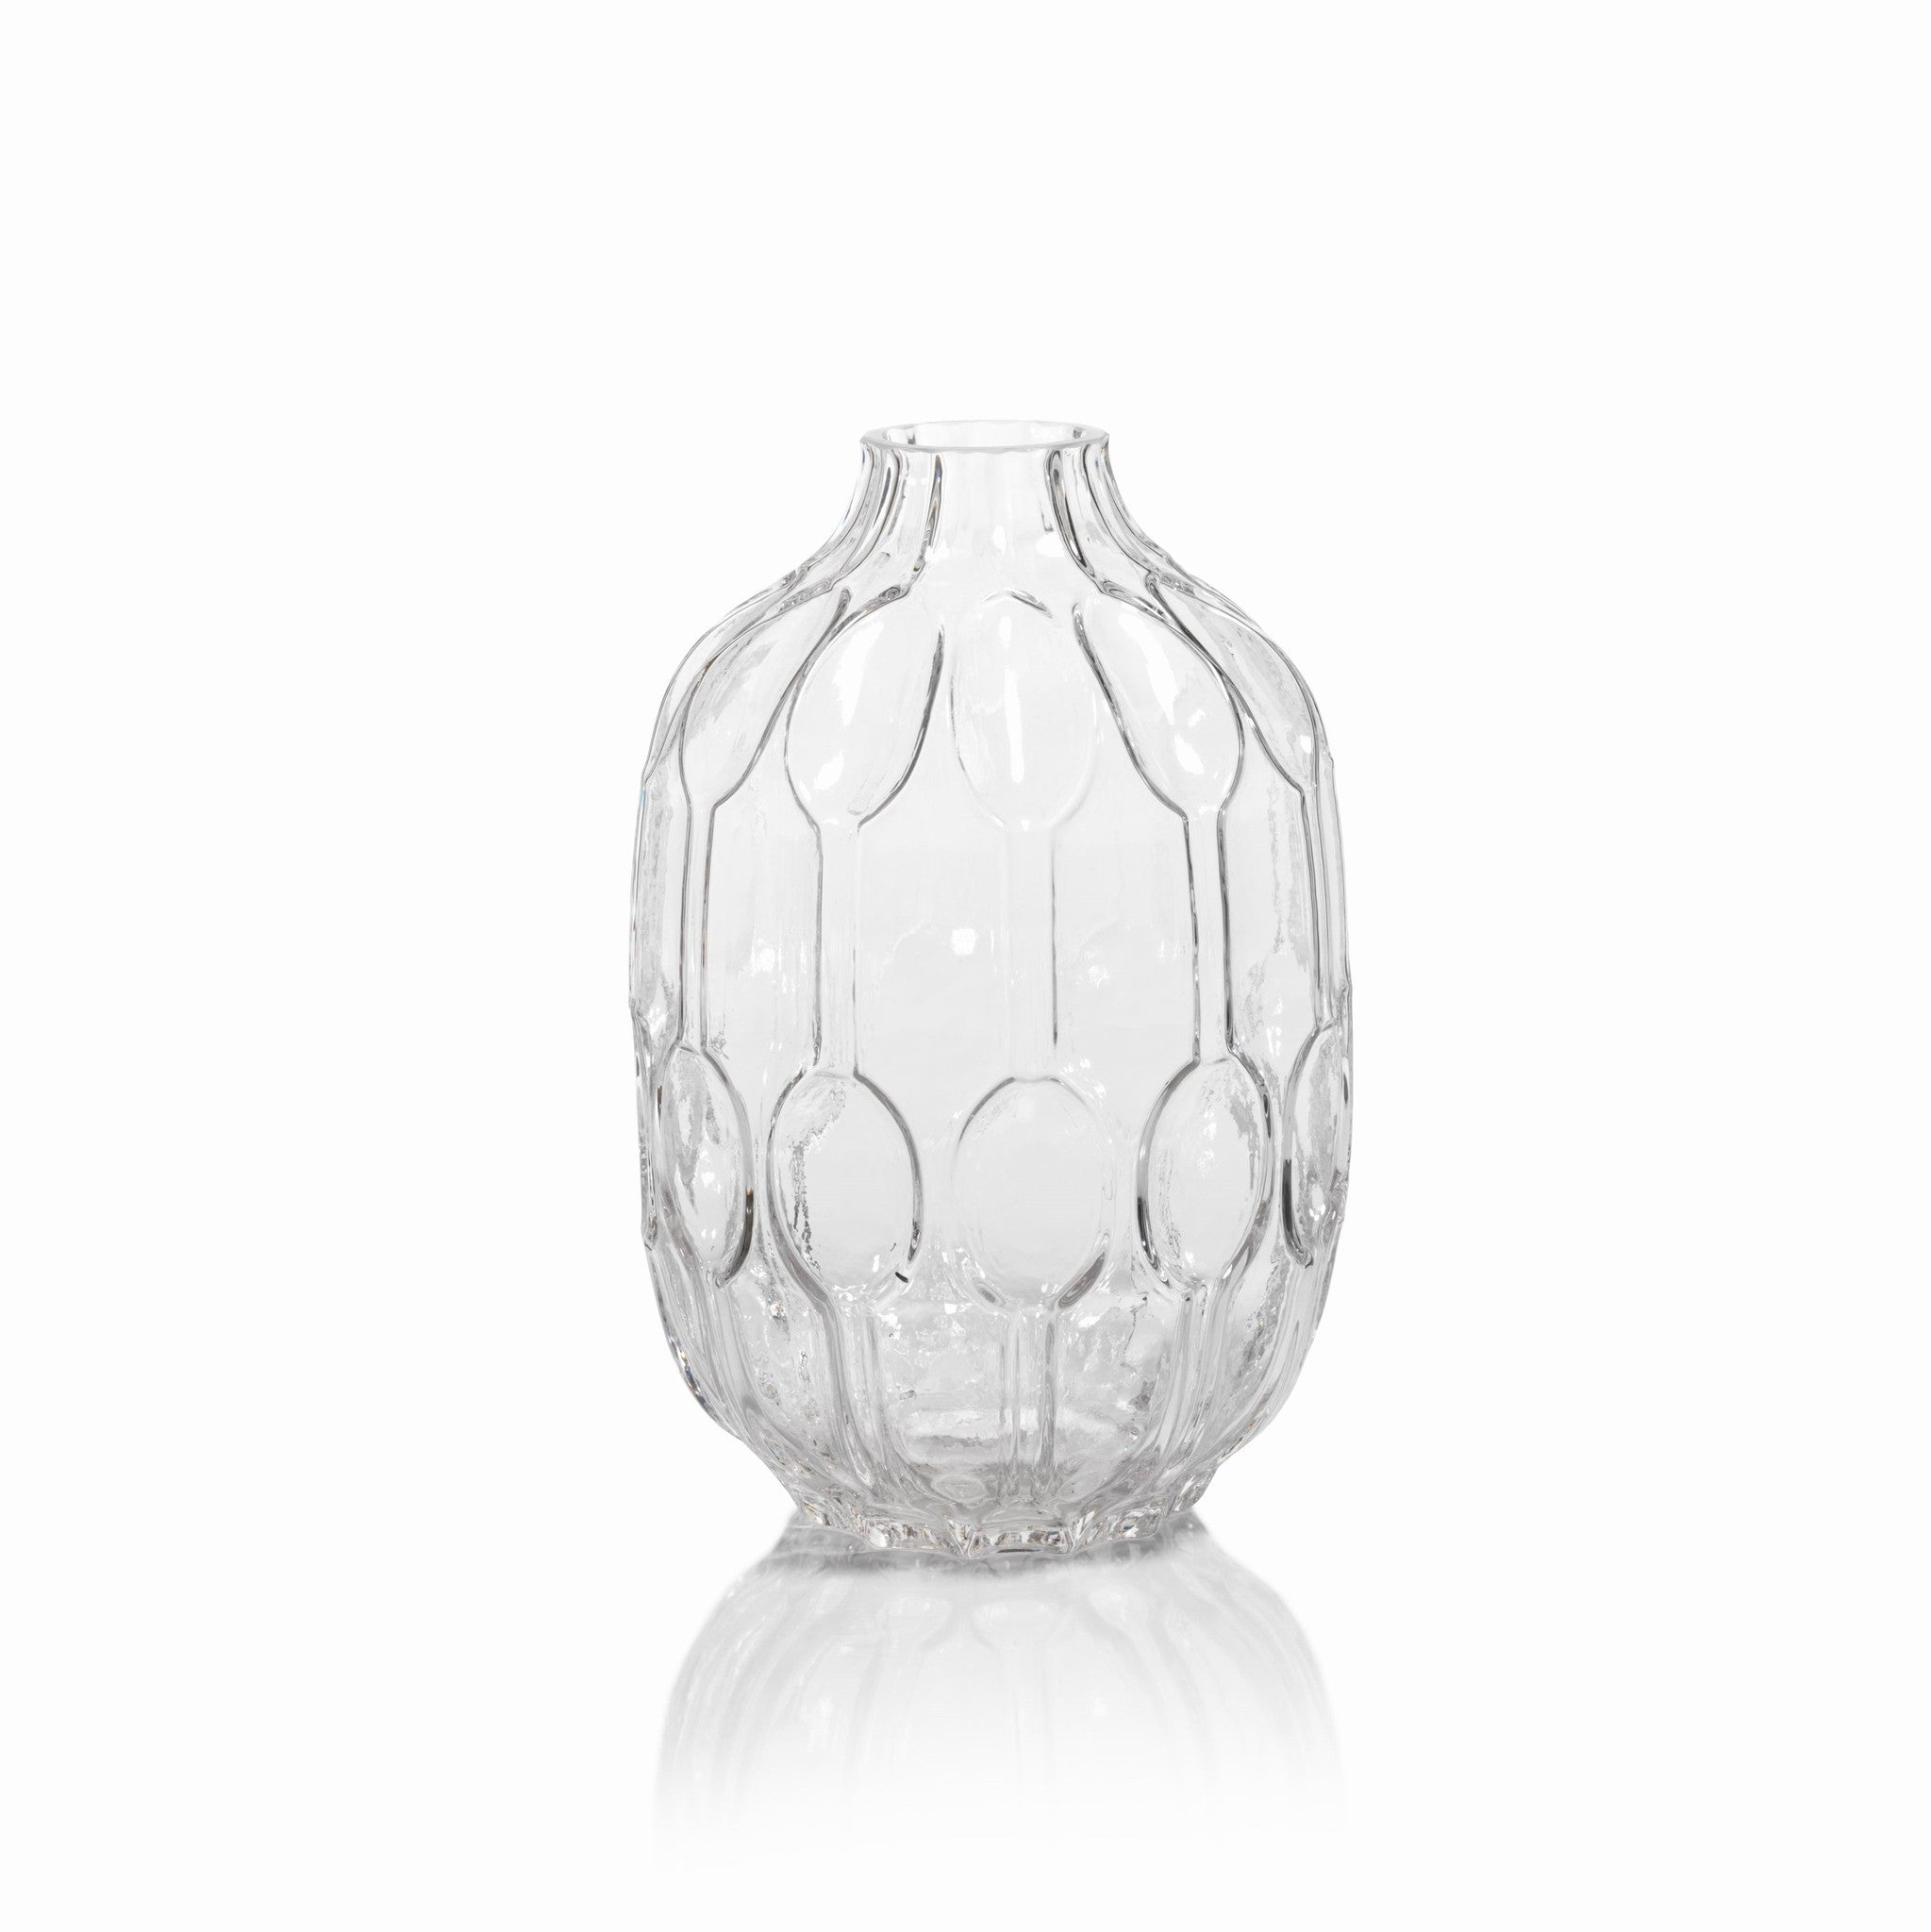 Glass Molded Vases - CARLYLE AVENUE